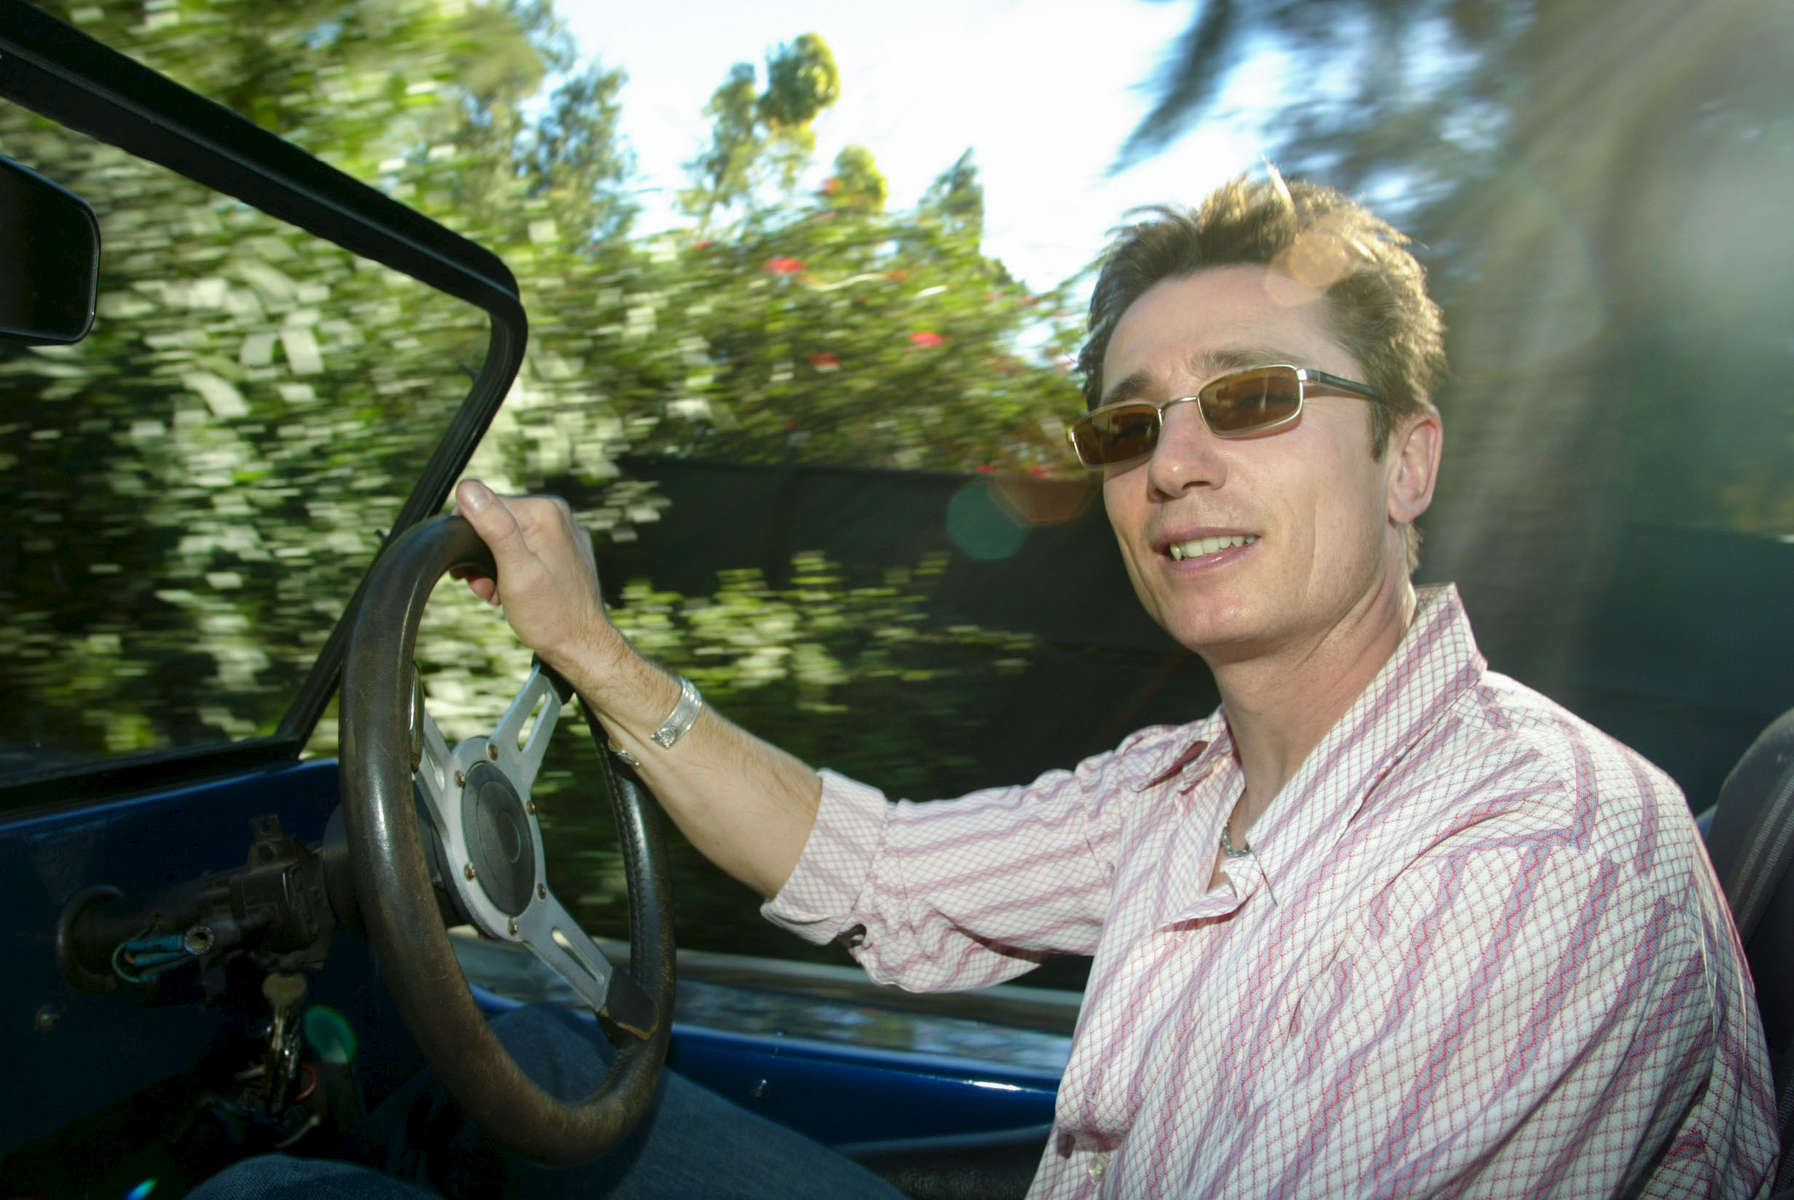 RCK STEWART COOK    REX USA    1 -22-03British actor, Dominic Keating  who plays Lieutenant Malcolm Reed on Star Trek's 5th spin off {quote}Enterprise{quote}. He used to star on Channel 4's comedy Desmond's in the UK. Pictured at his Hollywood Hills home and in his favourite VW kit car under the Hollywood Sign.